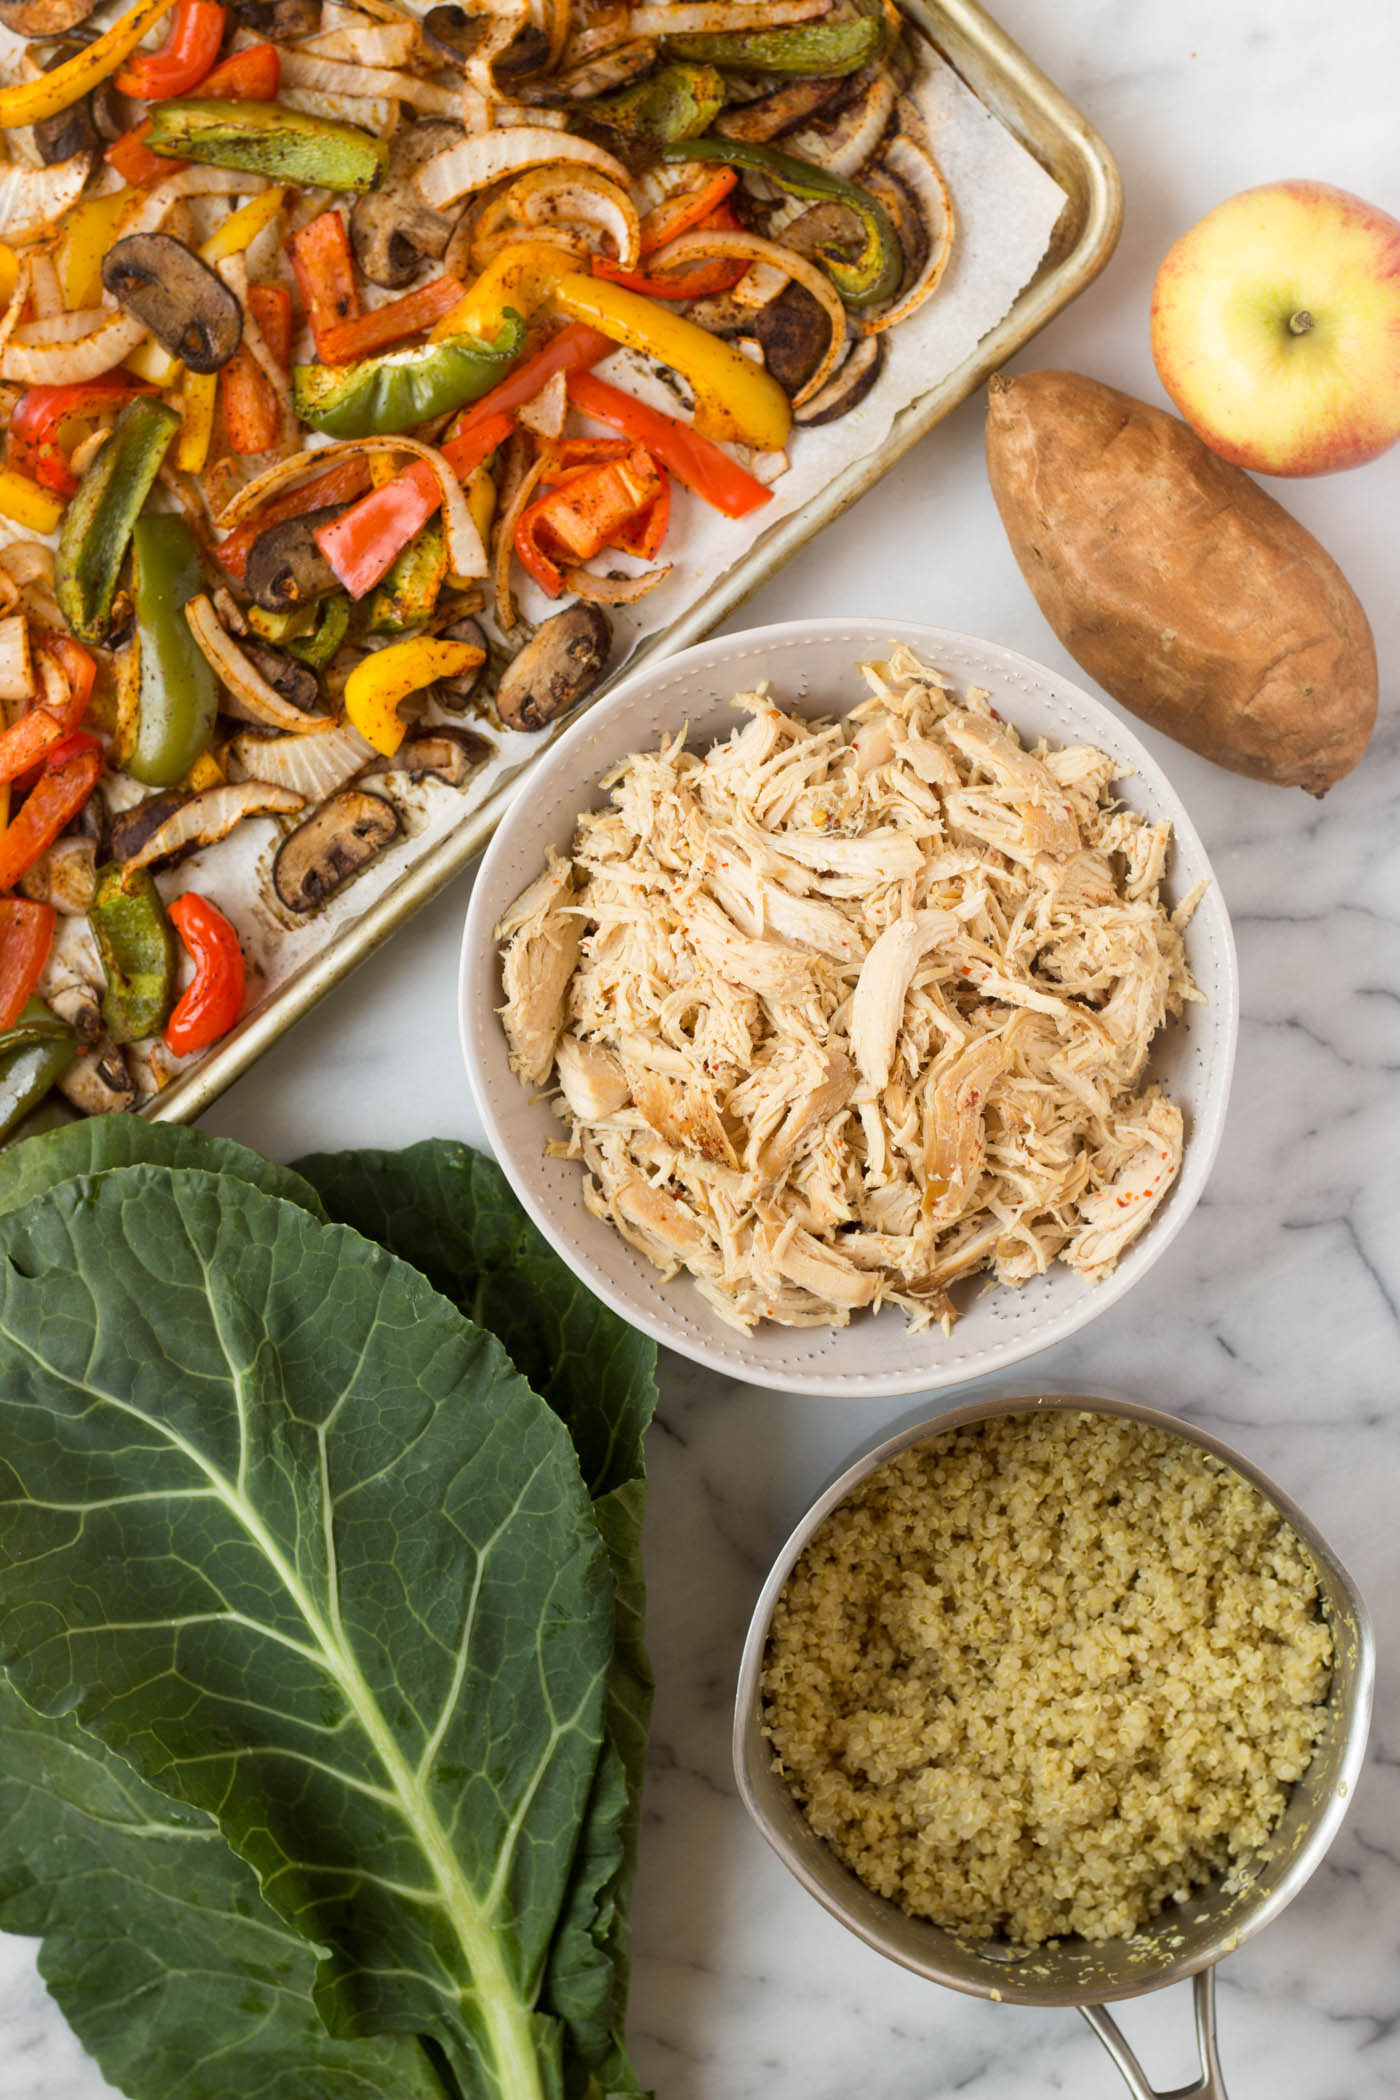 Make meal prep easy with Prep & Recycle - a meal prep guide to making shredded chicken + 5 different meals to repurpose it throughout the week - in under 2 hours! Gluten free, dairy free, and paleo friendly! - Eat the Gains